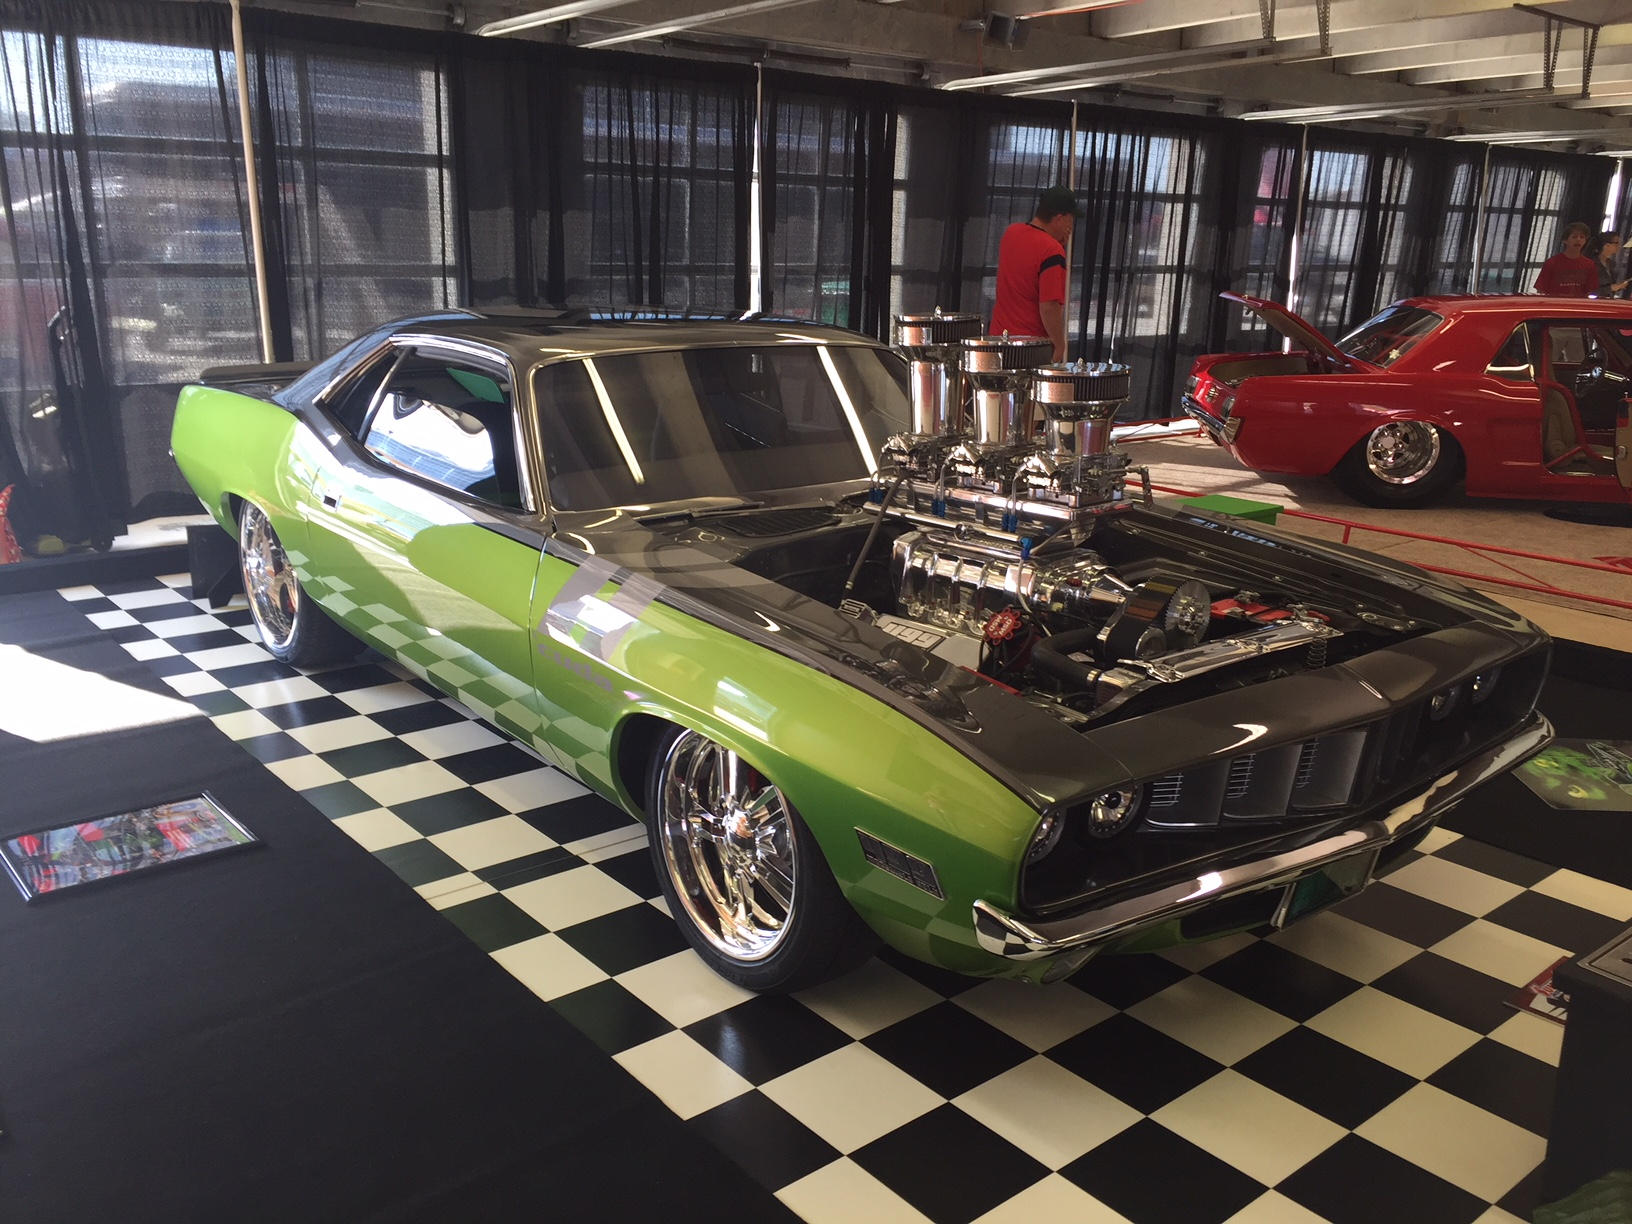 Budget Auto Parts >> Atlanta Motorama Gallery: 10 Cars that Caught Our Eyes in the Show Car Garage - OnAllCylinders